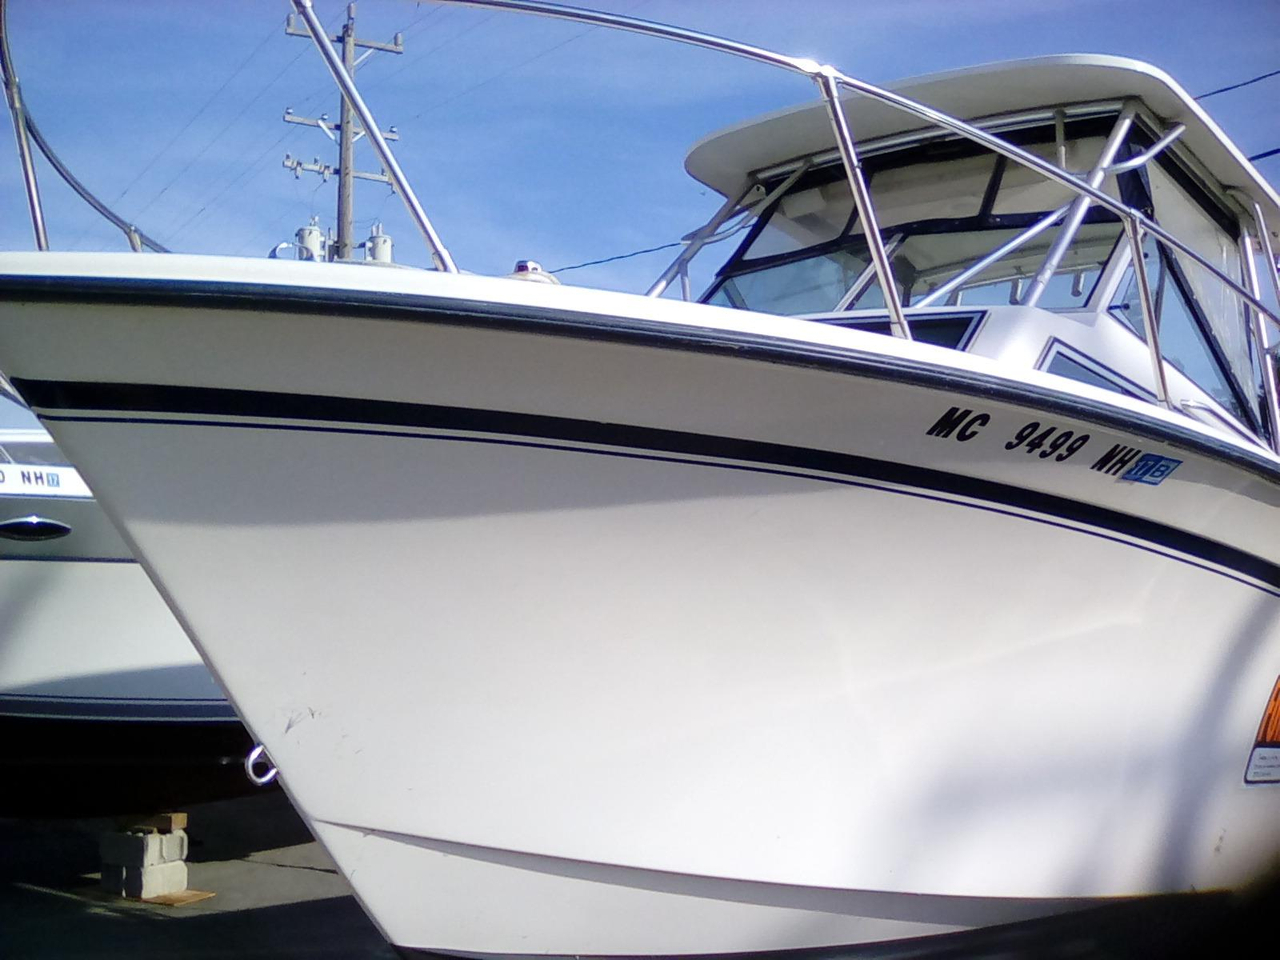 1988 used grady white 25 sailfish walkaround fishing boat for Used fishing boats for sale in michigan